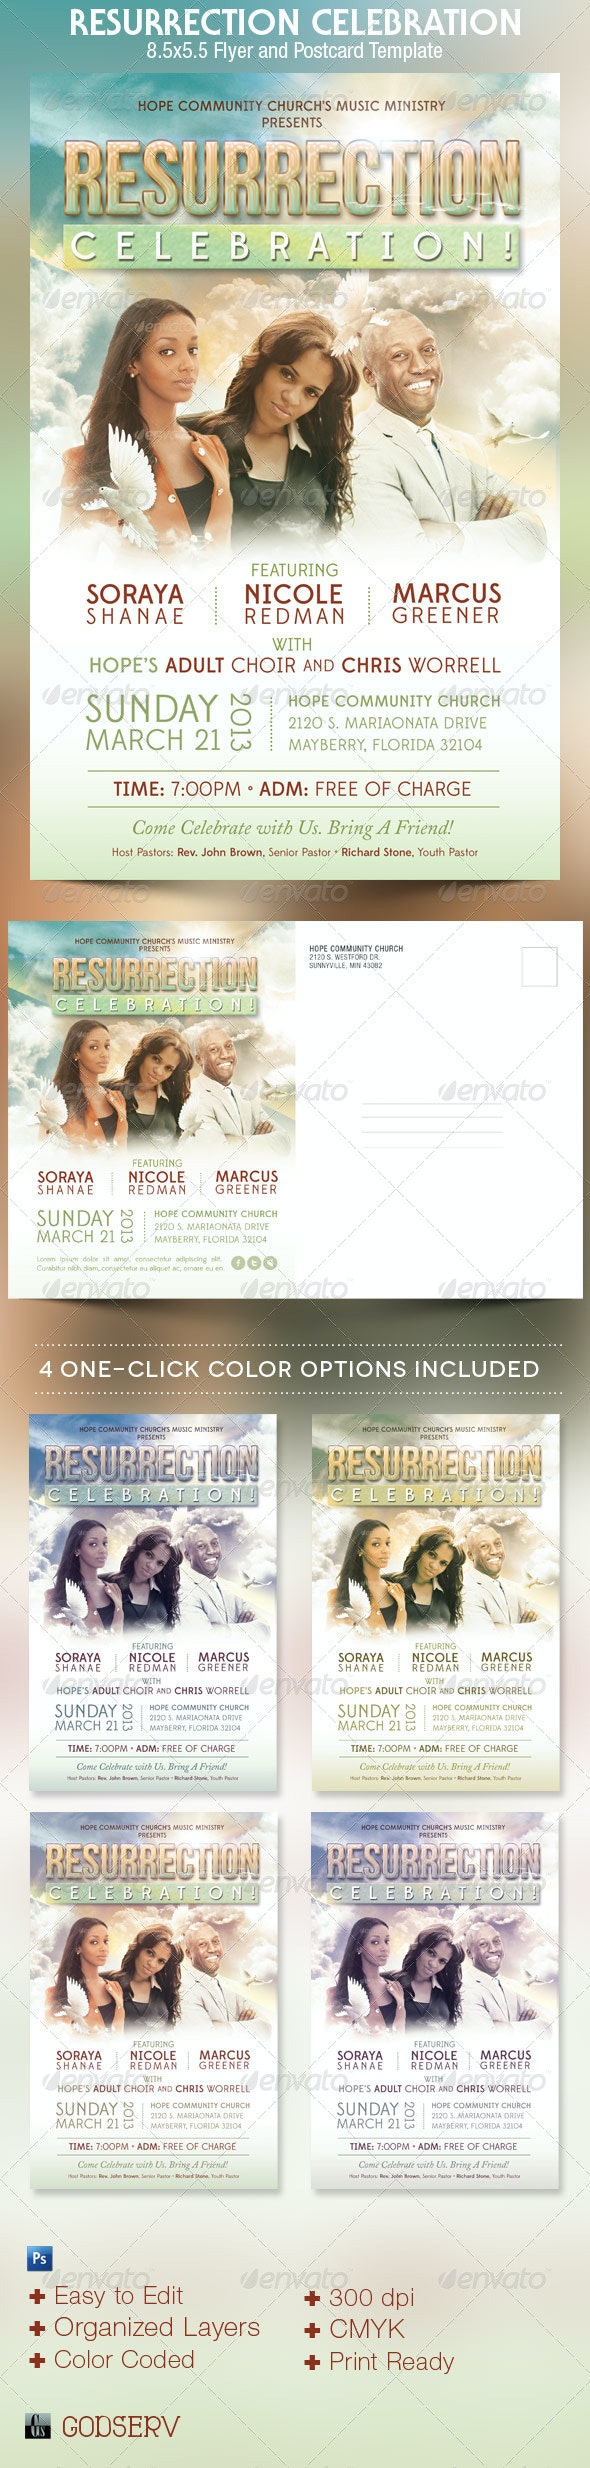 Resurrection Celebration Church Flyer Template  - Church Flyers